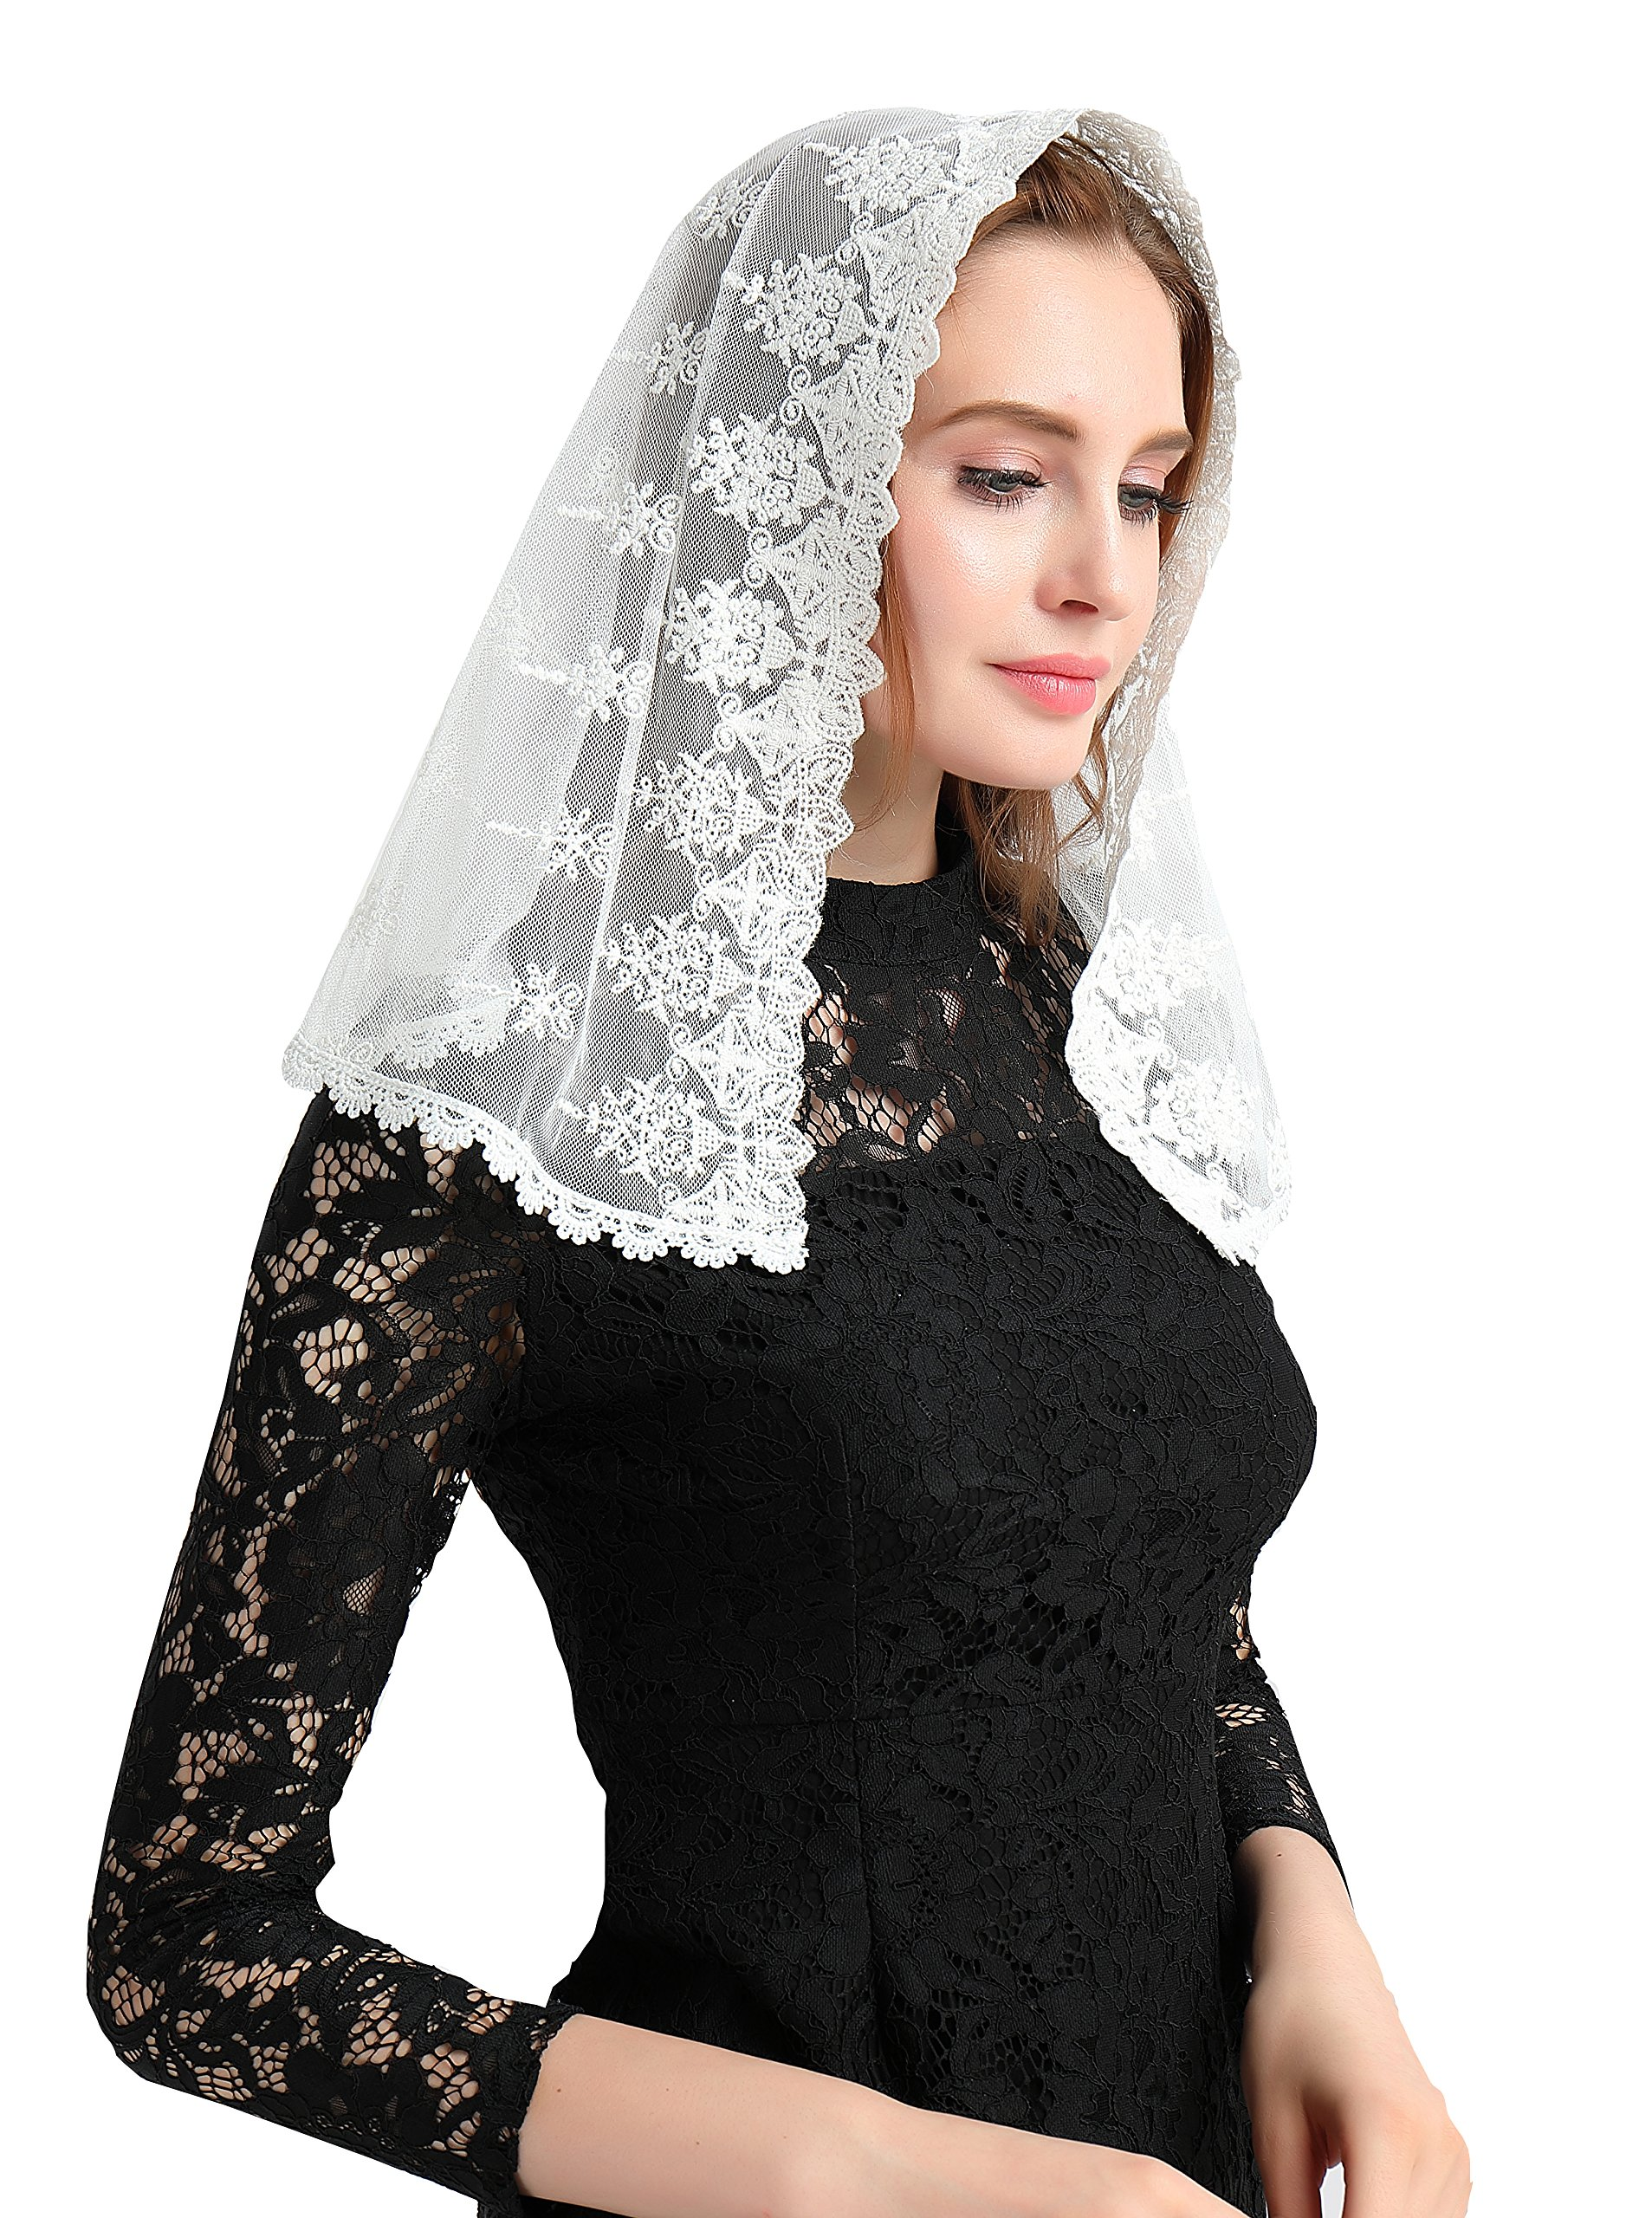 Vintage Veil Church Mantilla Lace Chapel Veil Vintage Mantilla V02 (Style One)